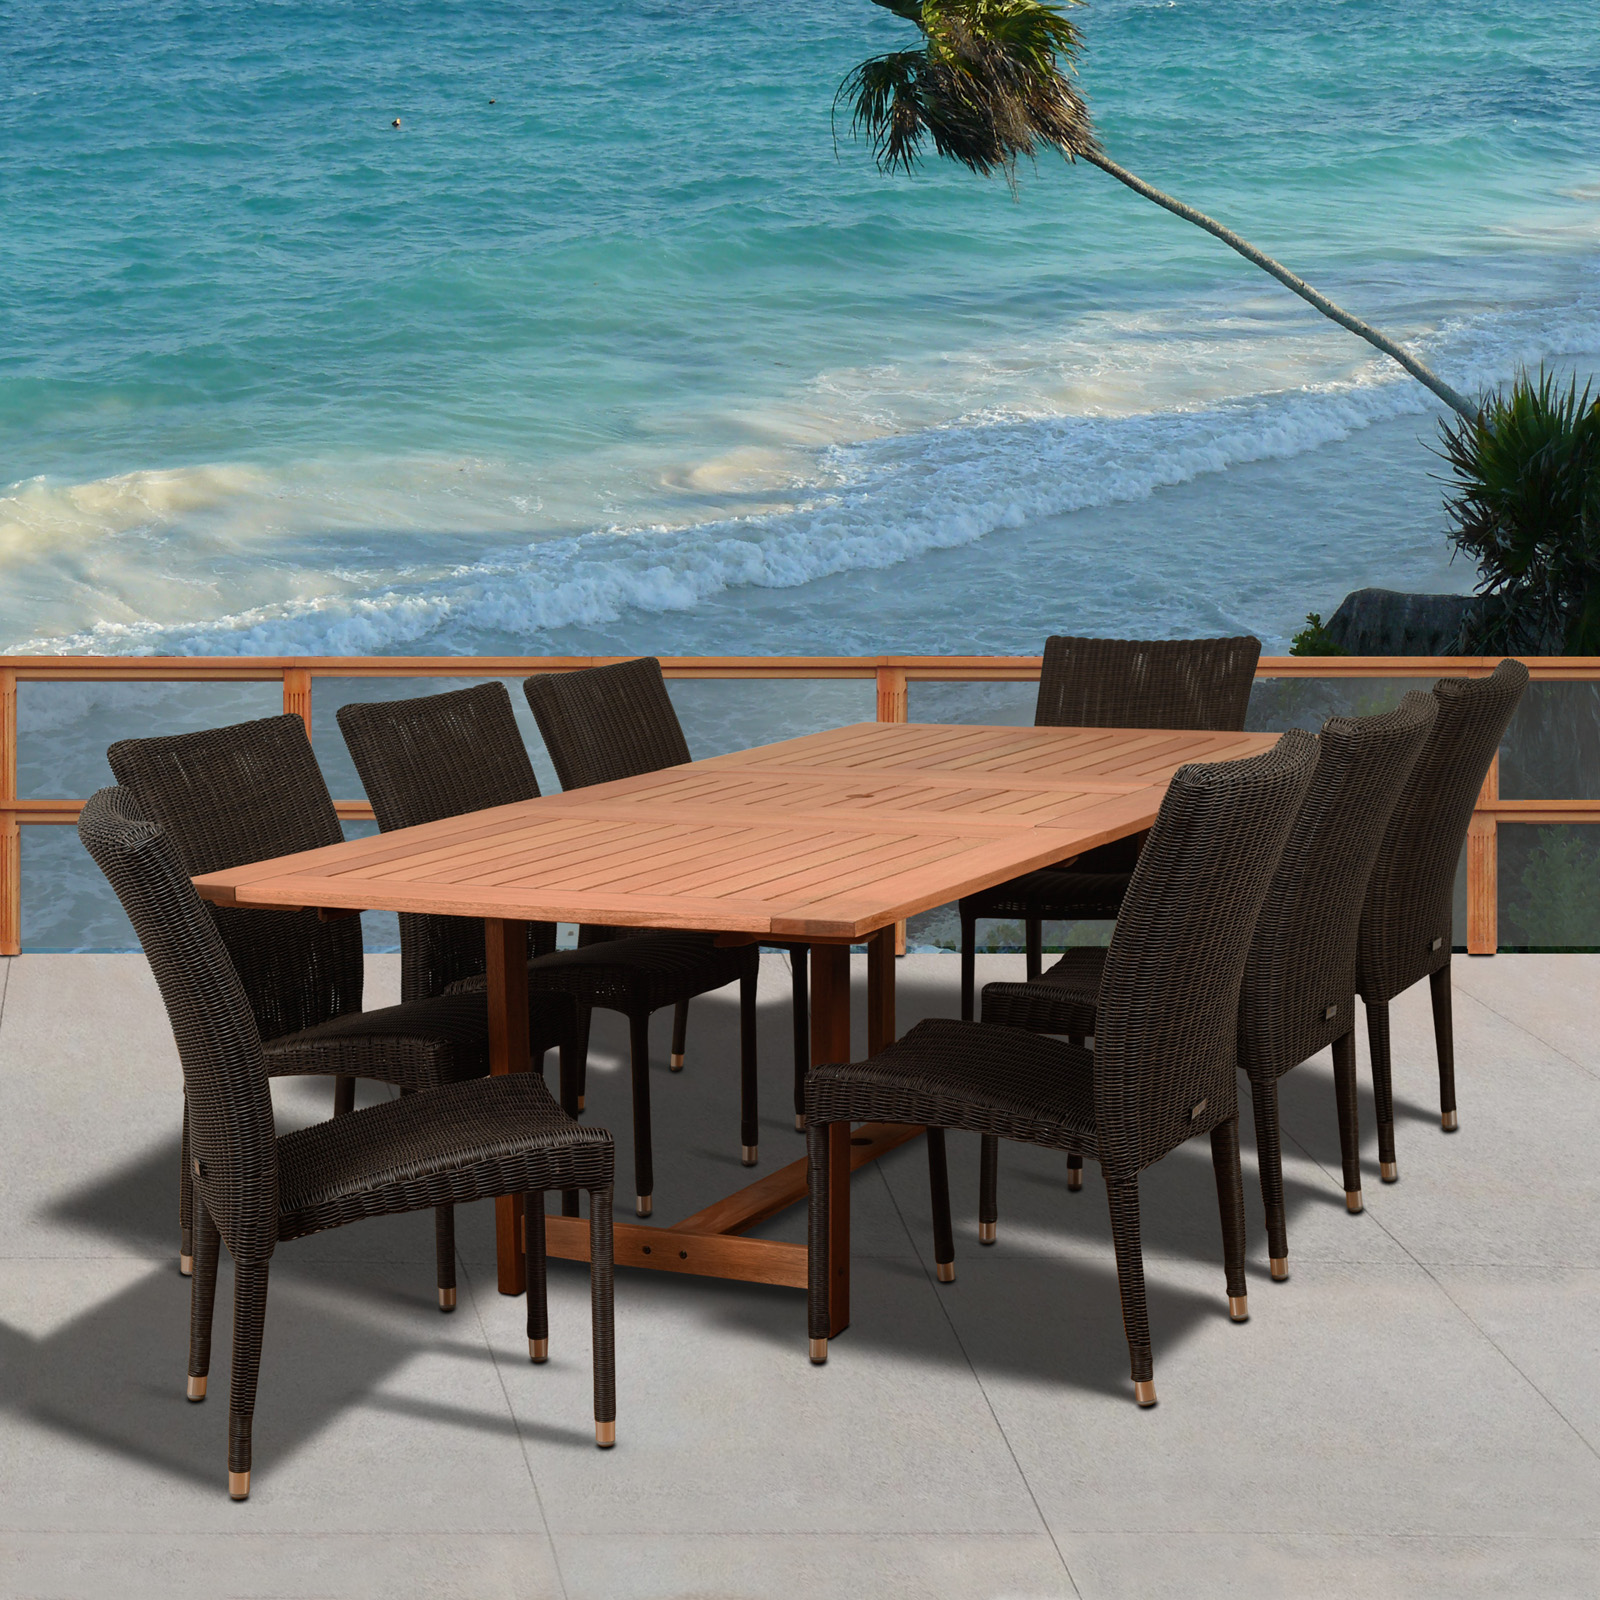 Belham Living Brighton Outdoor Patio Dining Set with Directors ...